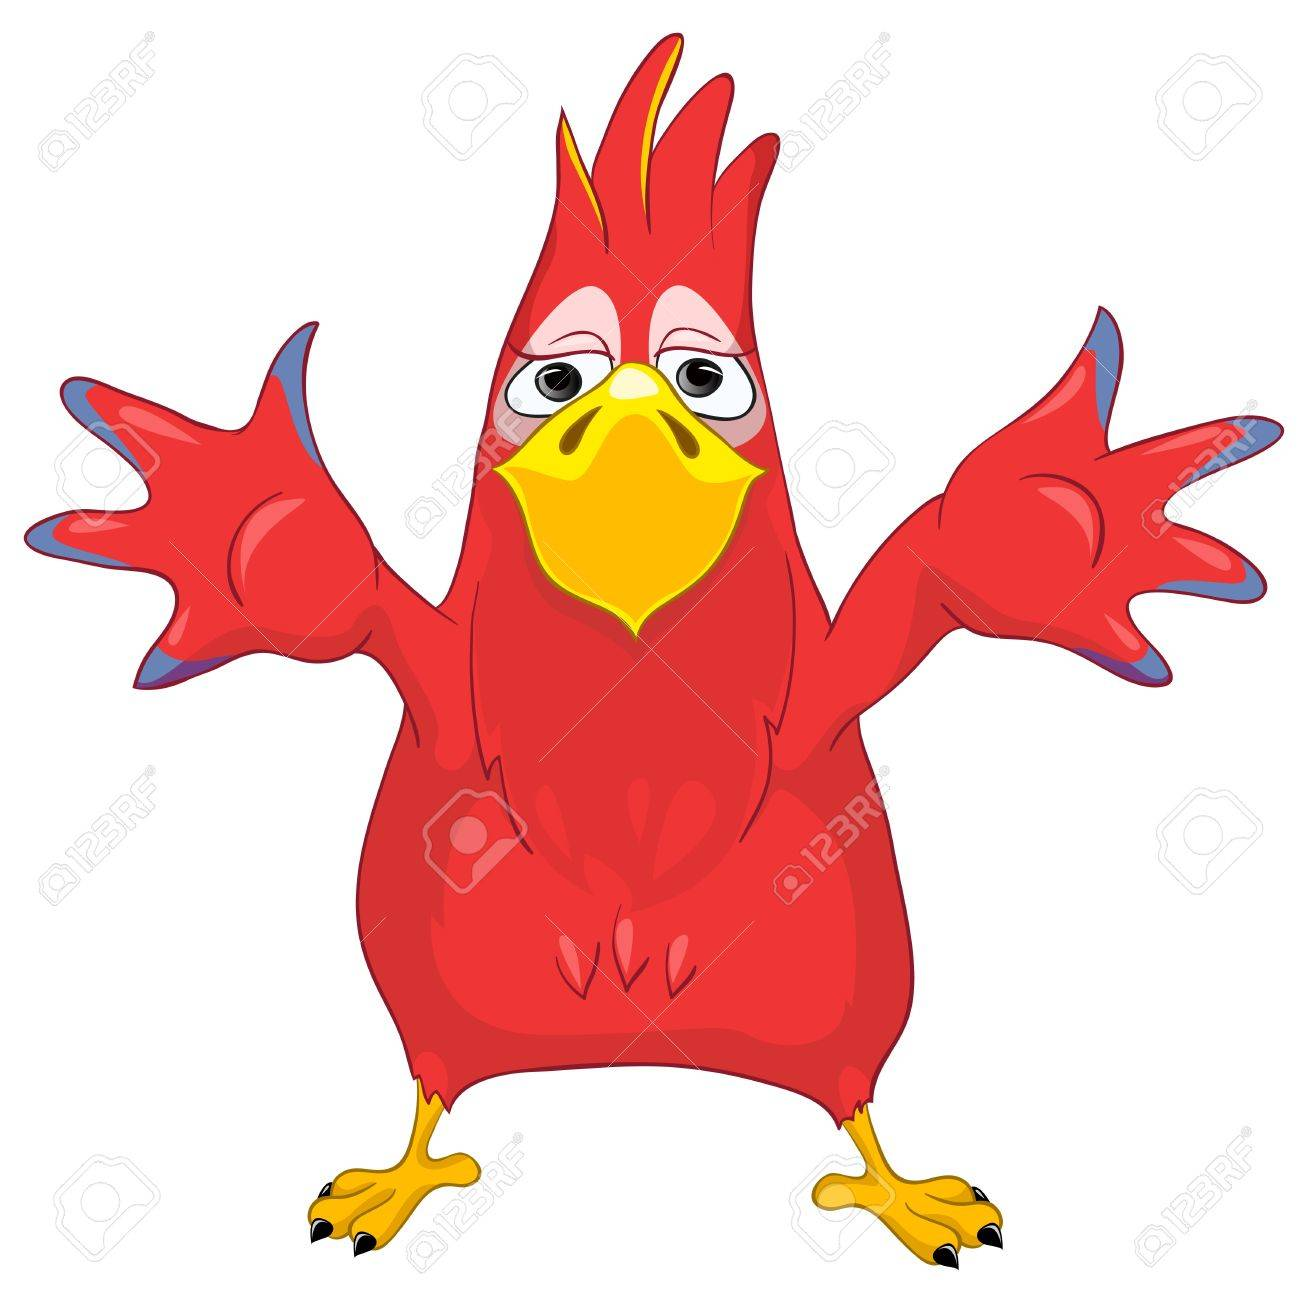 Showing Funny Parrot Stock Vector - 13640775